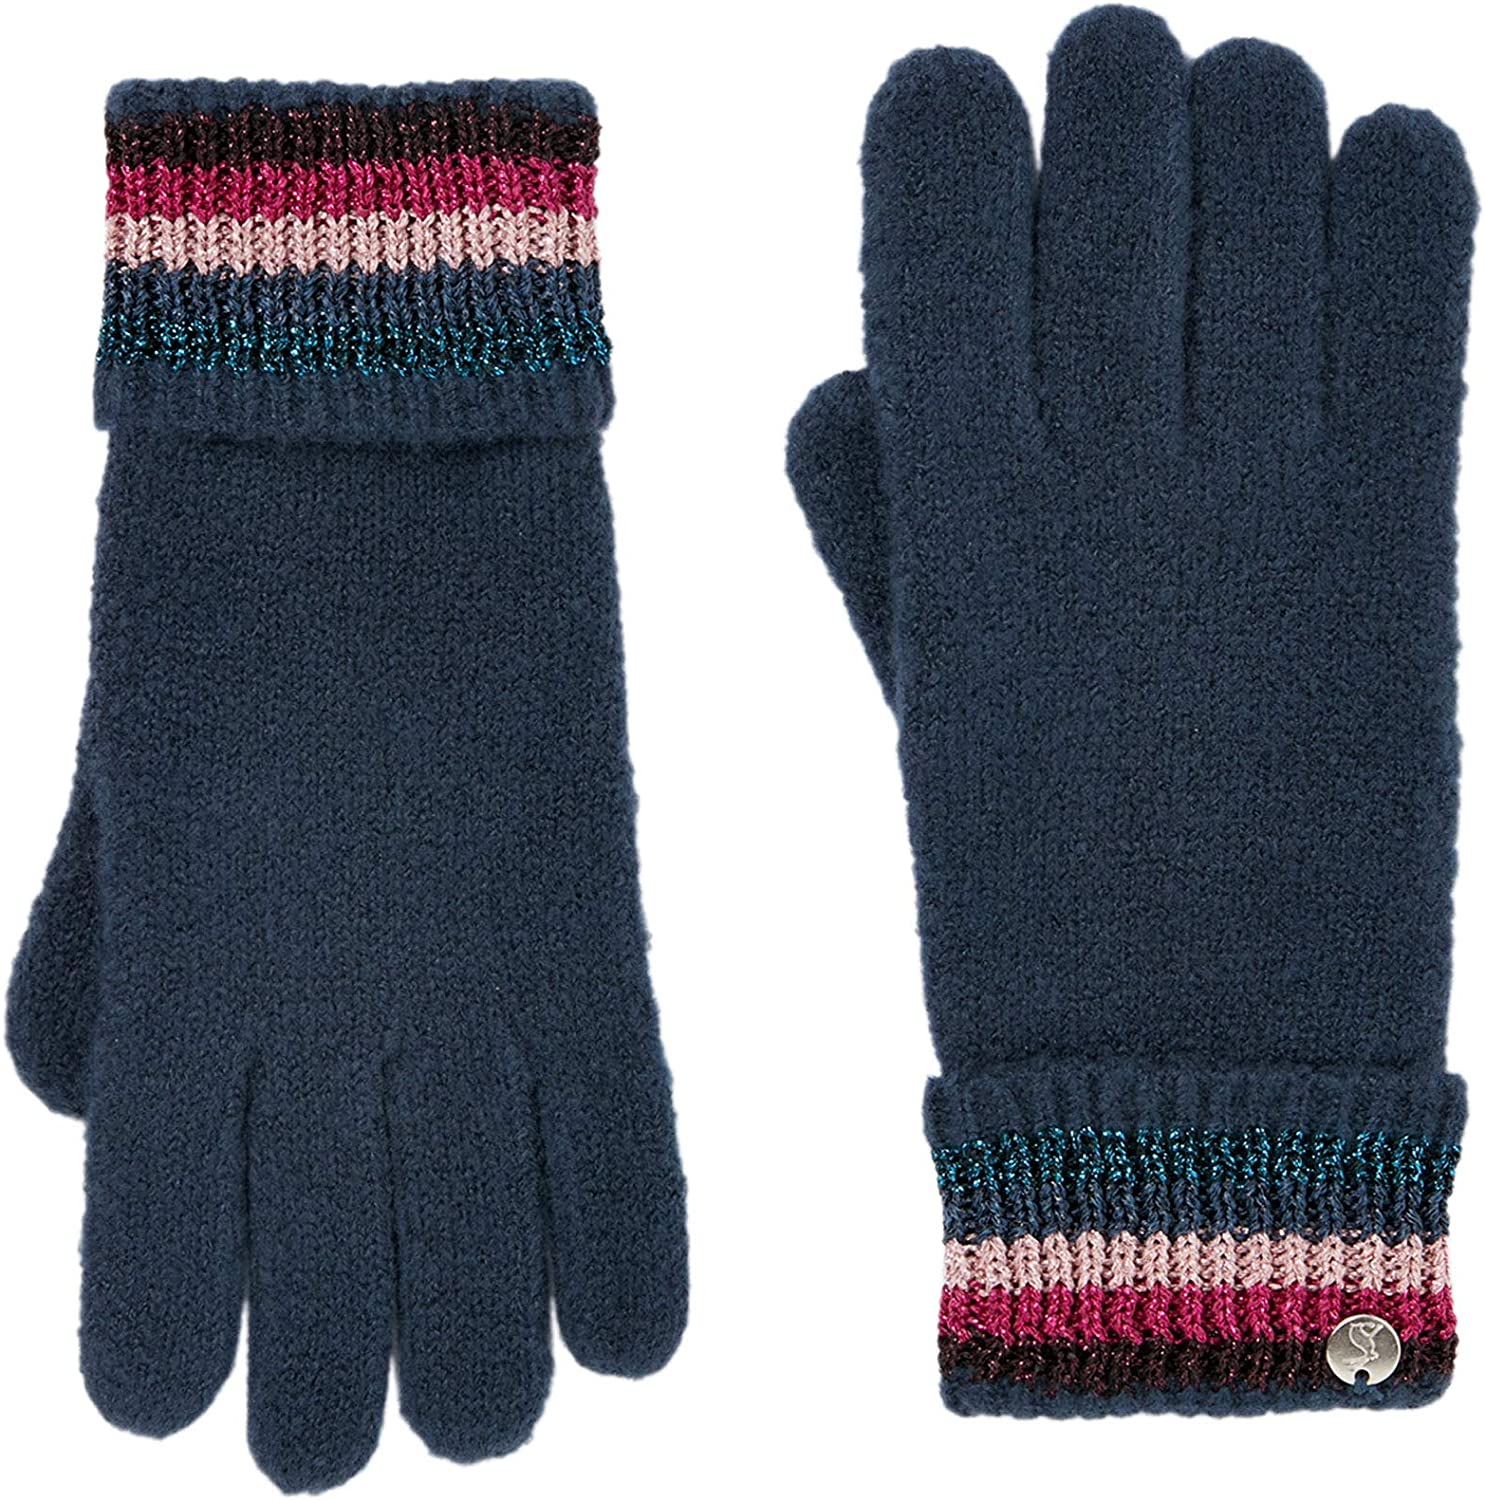 Joules Joanie Womens Gloves